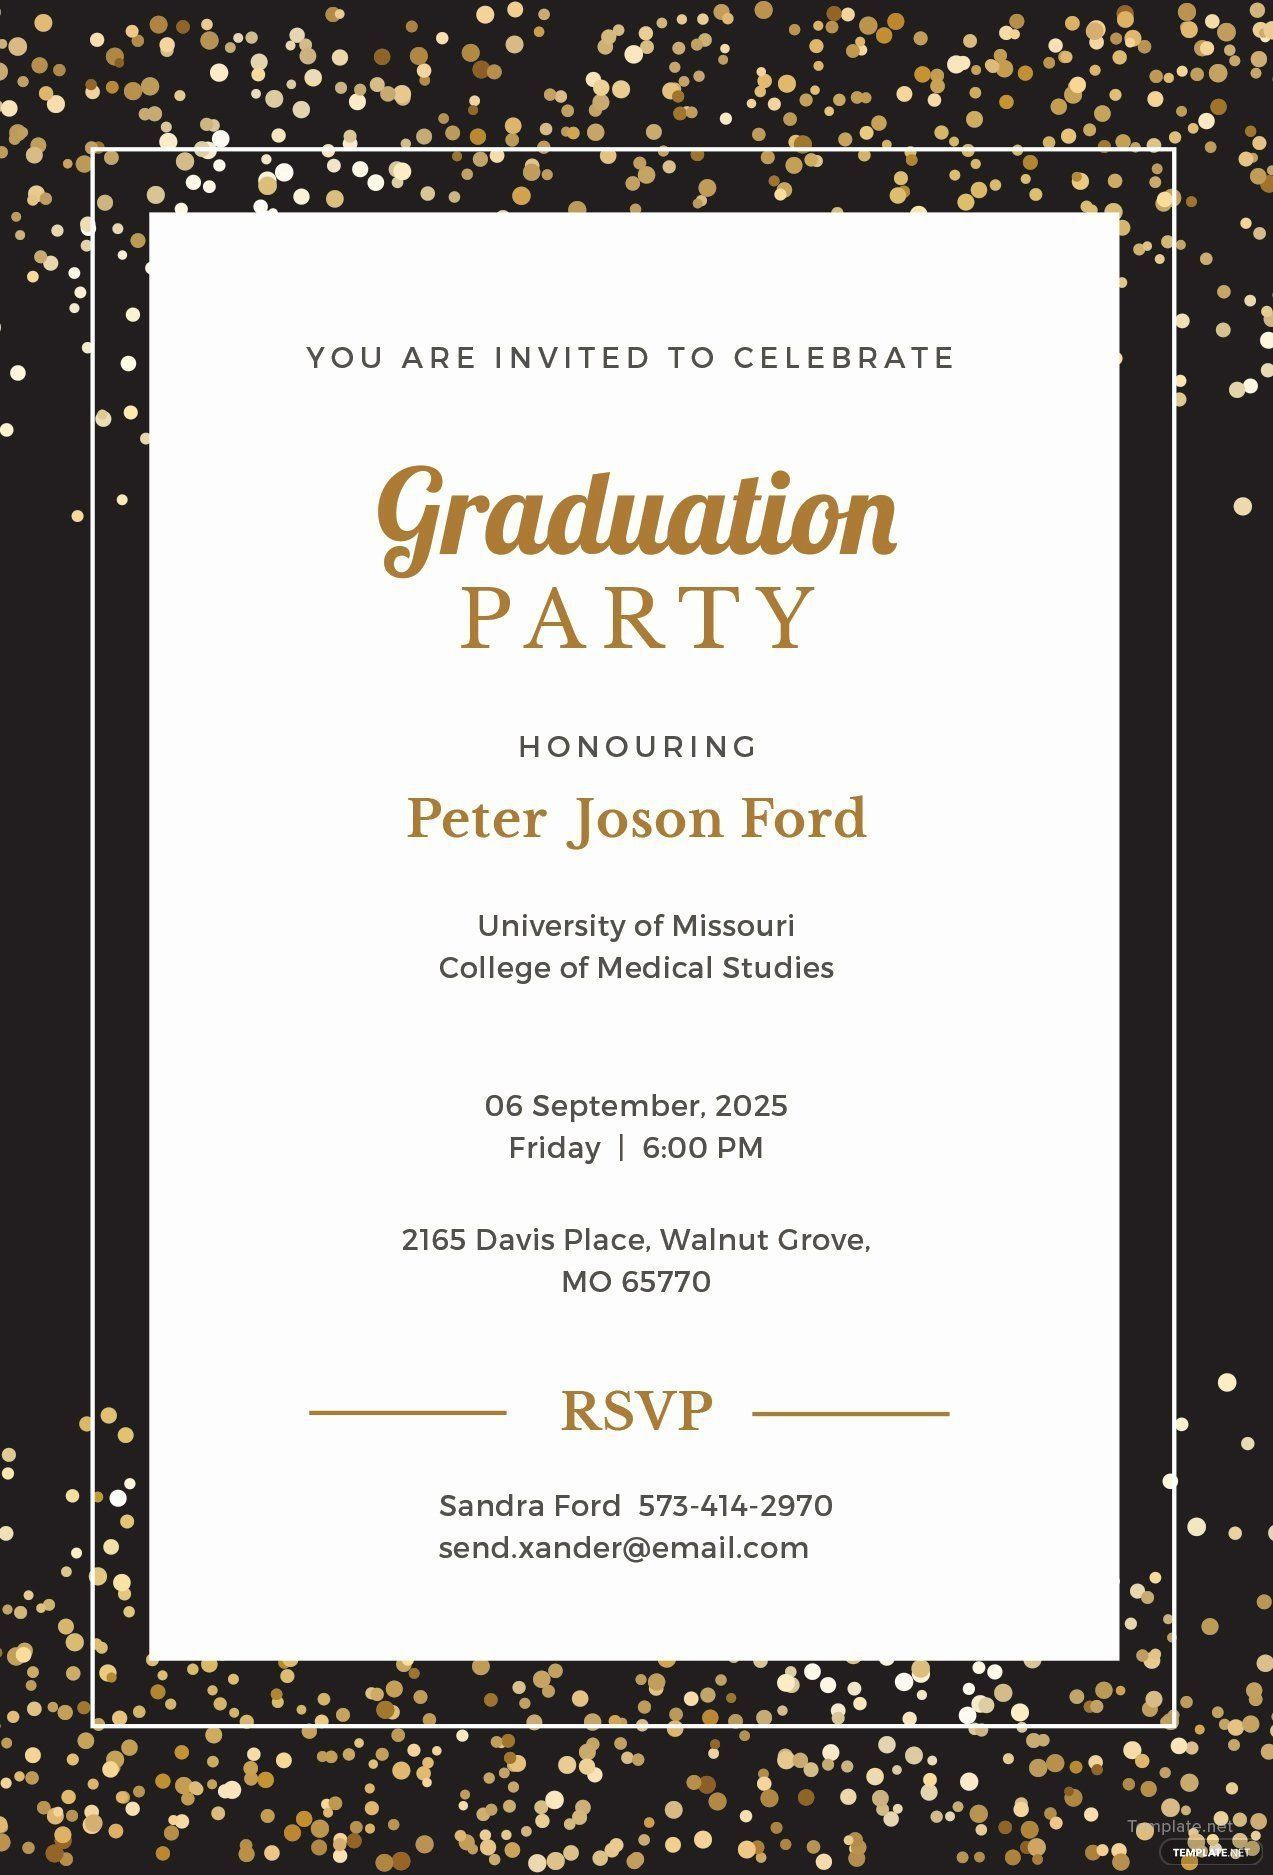 008 Dreaded Microsoft Word Graduation Party Invitation Template High Definition Full